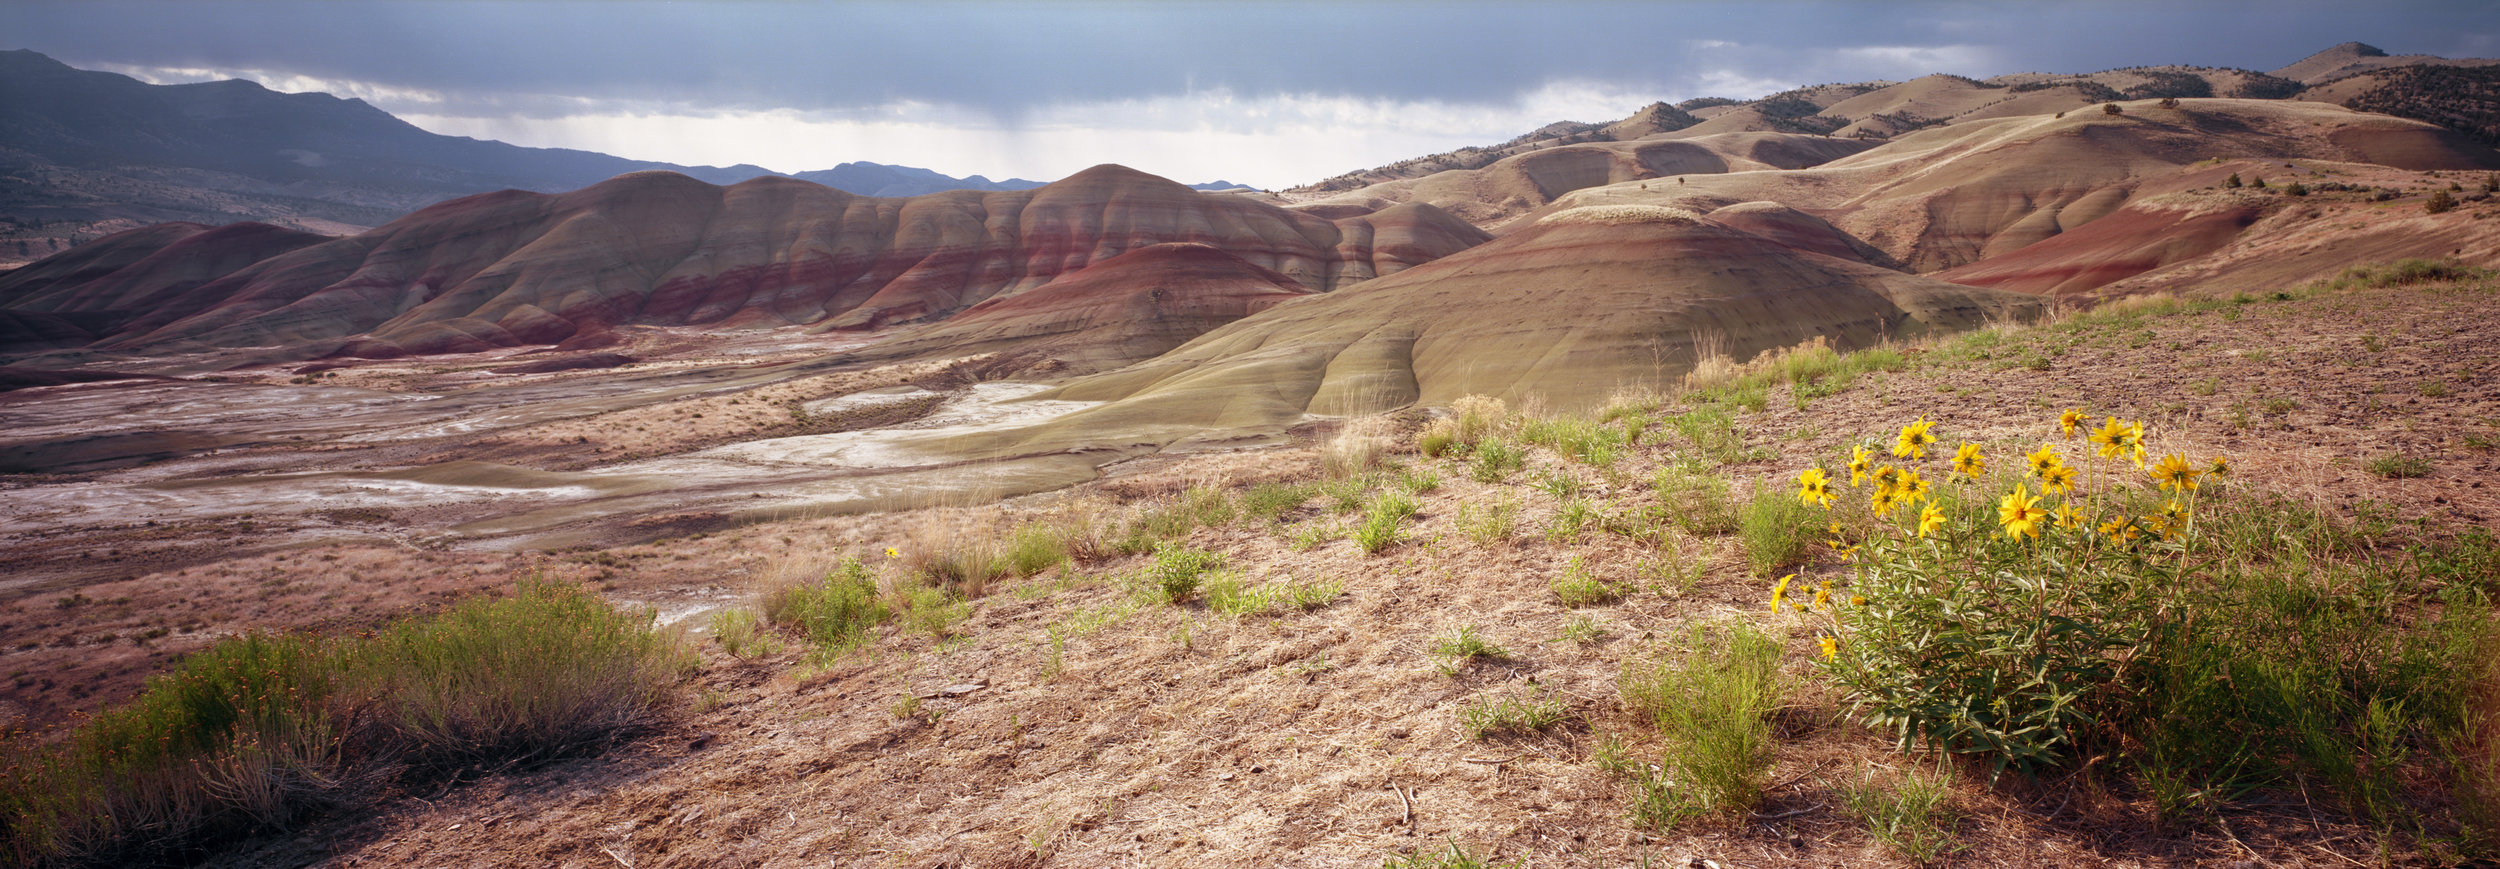 Painted Hills of Oregon at sunrise. Velvia 50, 1/4 sec, f/32.